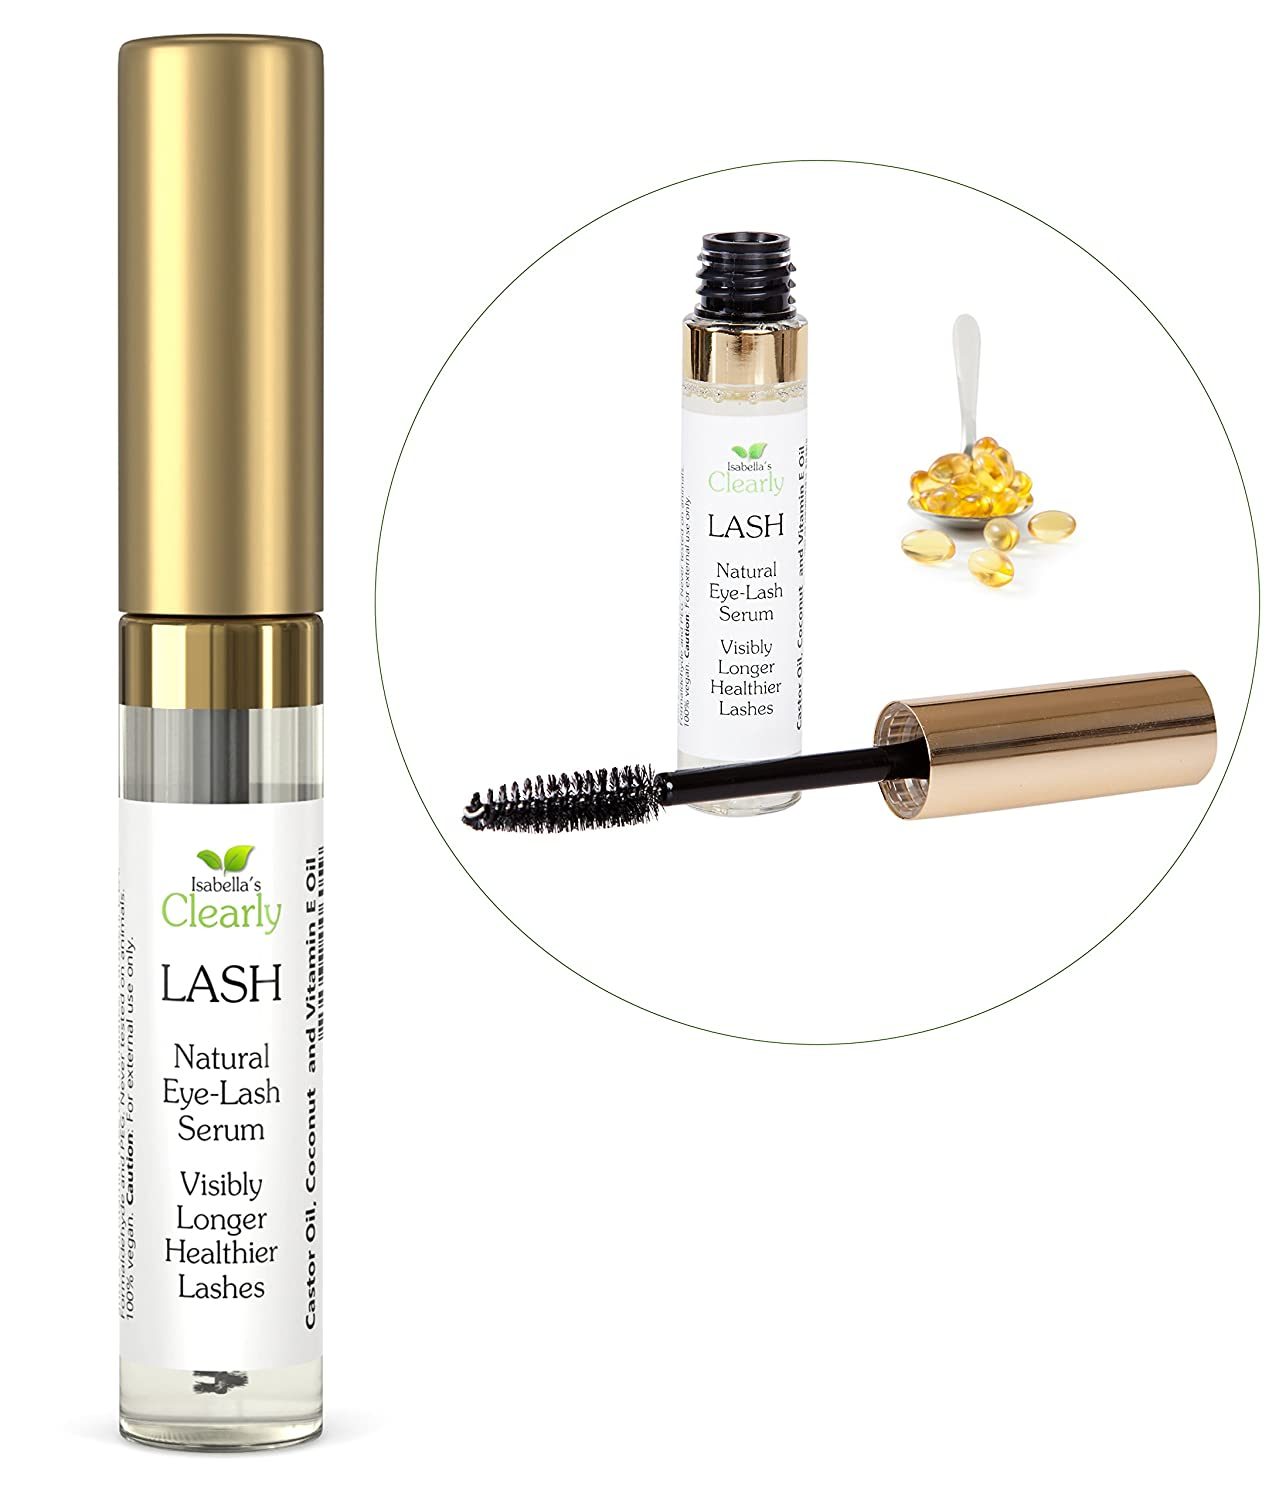 Isabella's Clearly LASH - Best Eyelash Growth Serum - Longer, Fuller, Lush Lashes and Eyebrows - All Natural Lash and Brow Enhancer for Fast Growth - Moisturizing and Volumizing. Can use as Primer with Mascara - Pure Castor, Coconut, Vitamin E oils. Made i